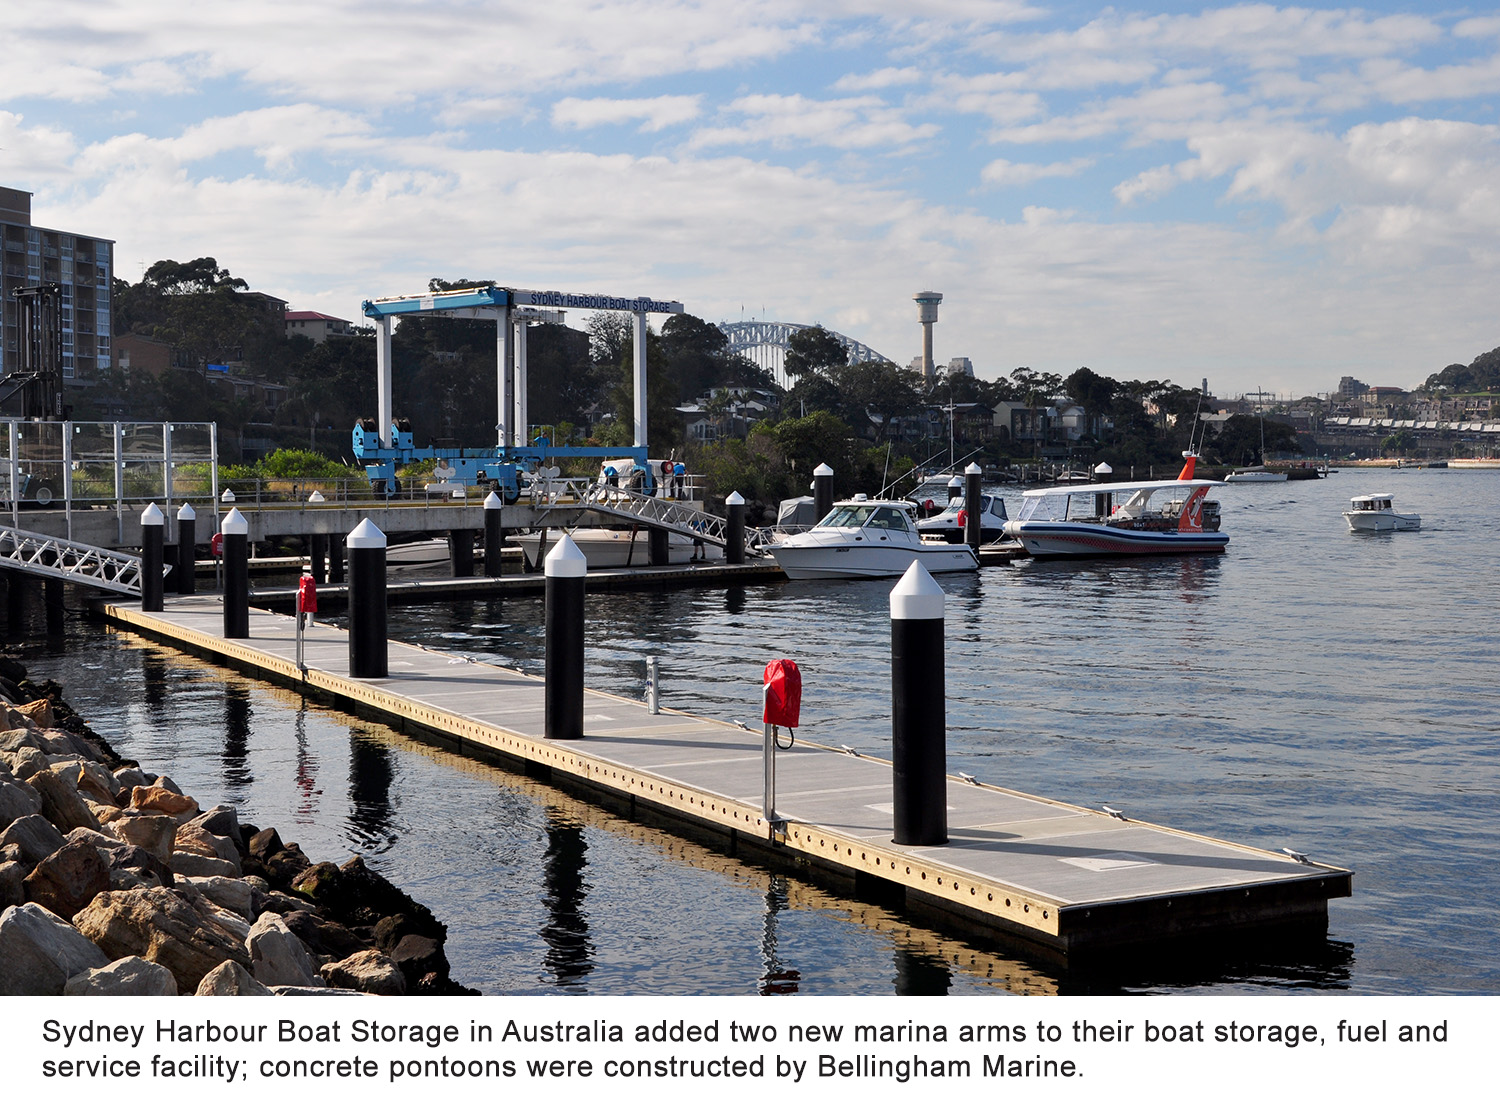 Bellingham Marine builds new concrete pontoons at Sydney Harbour Boat Storage